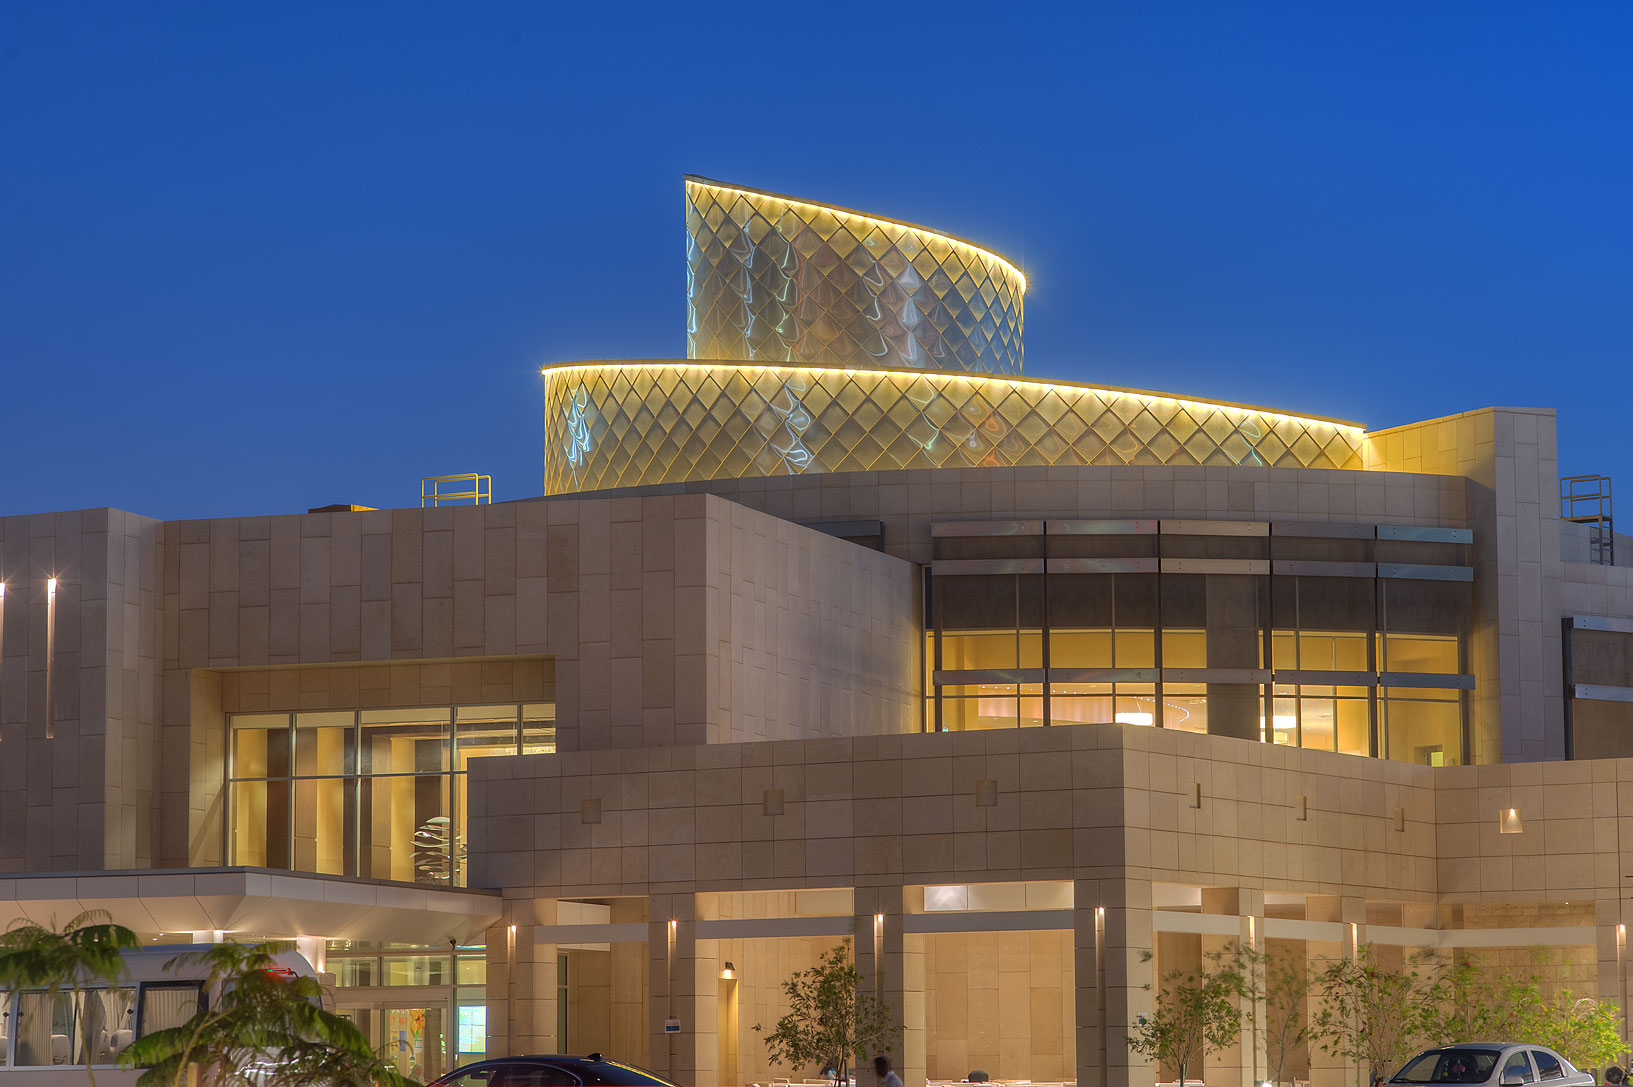 Atrium with a spiral structure of a new Student...Education City at evening. Doha, Qatar